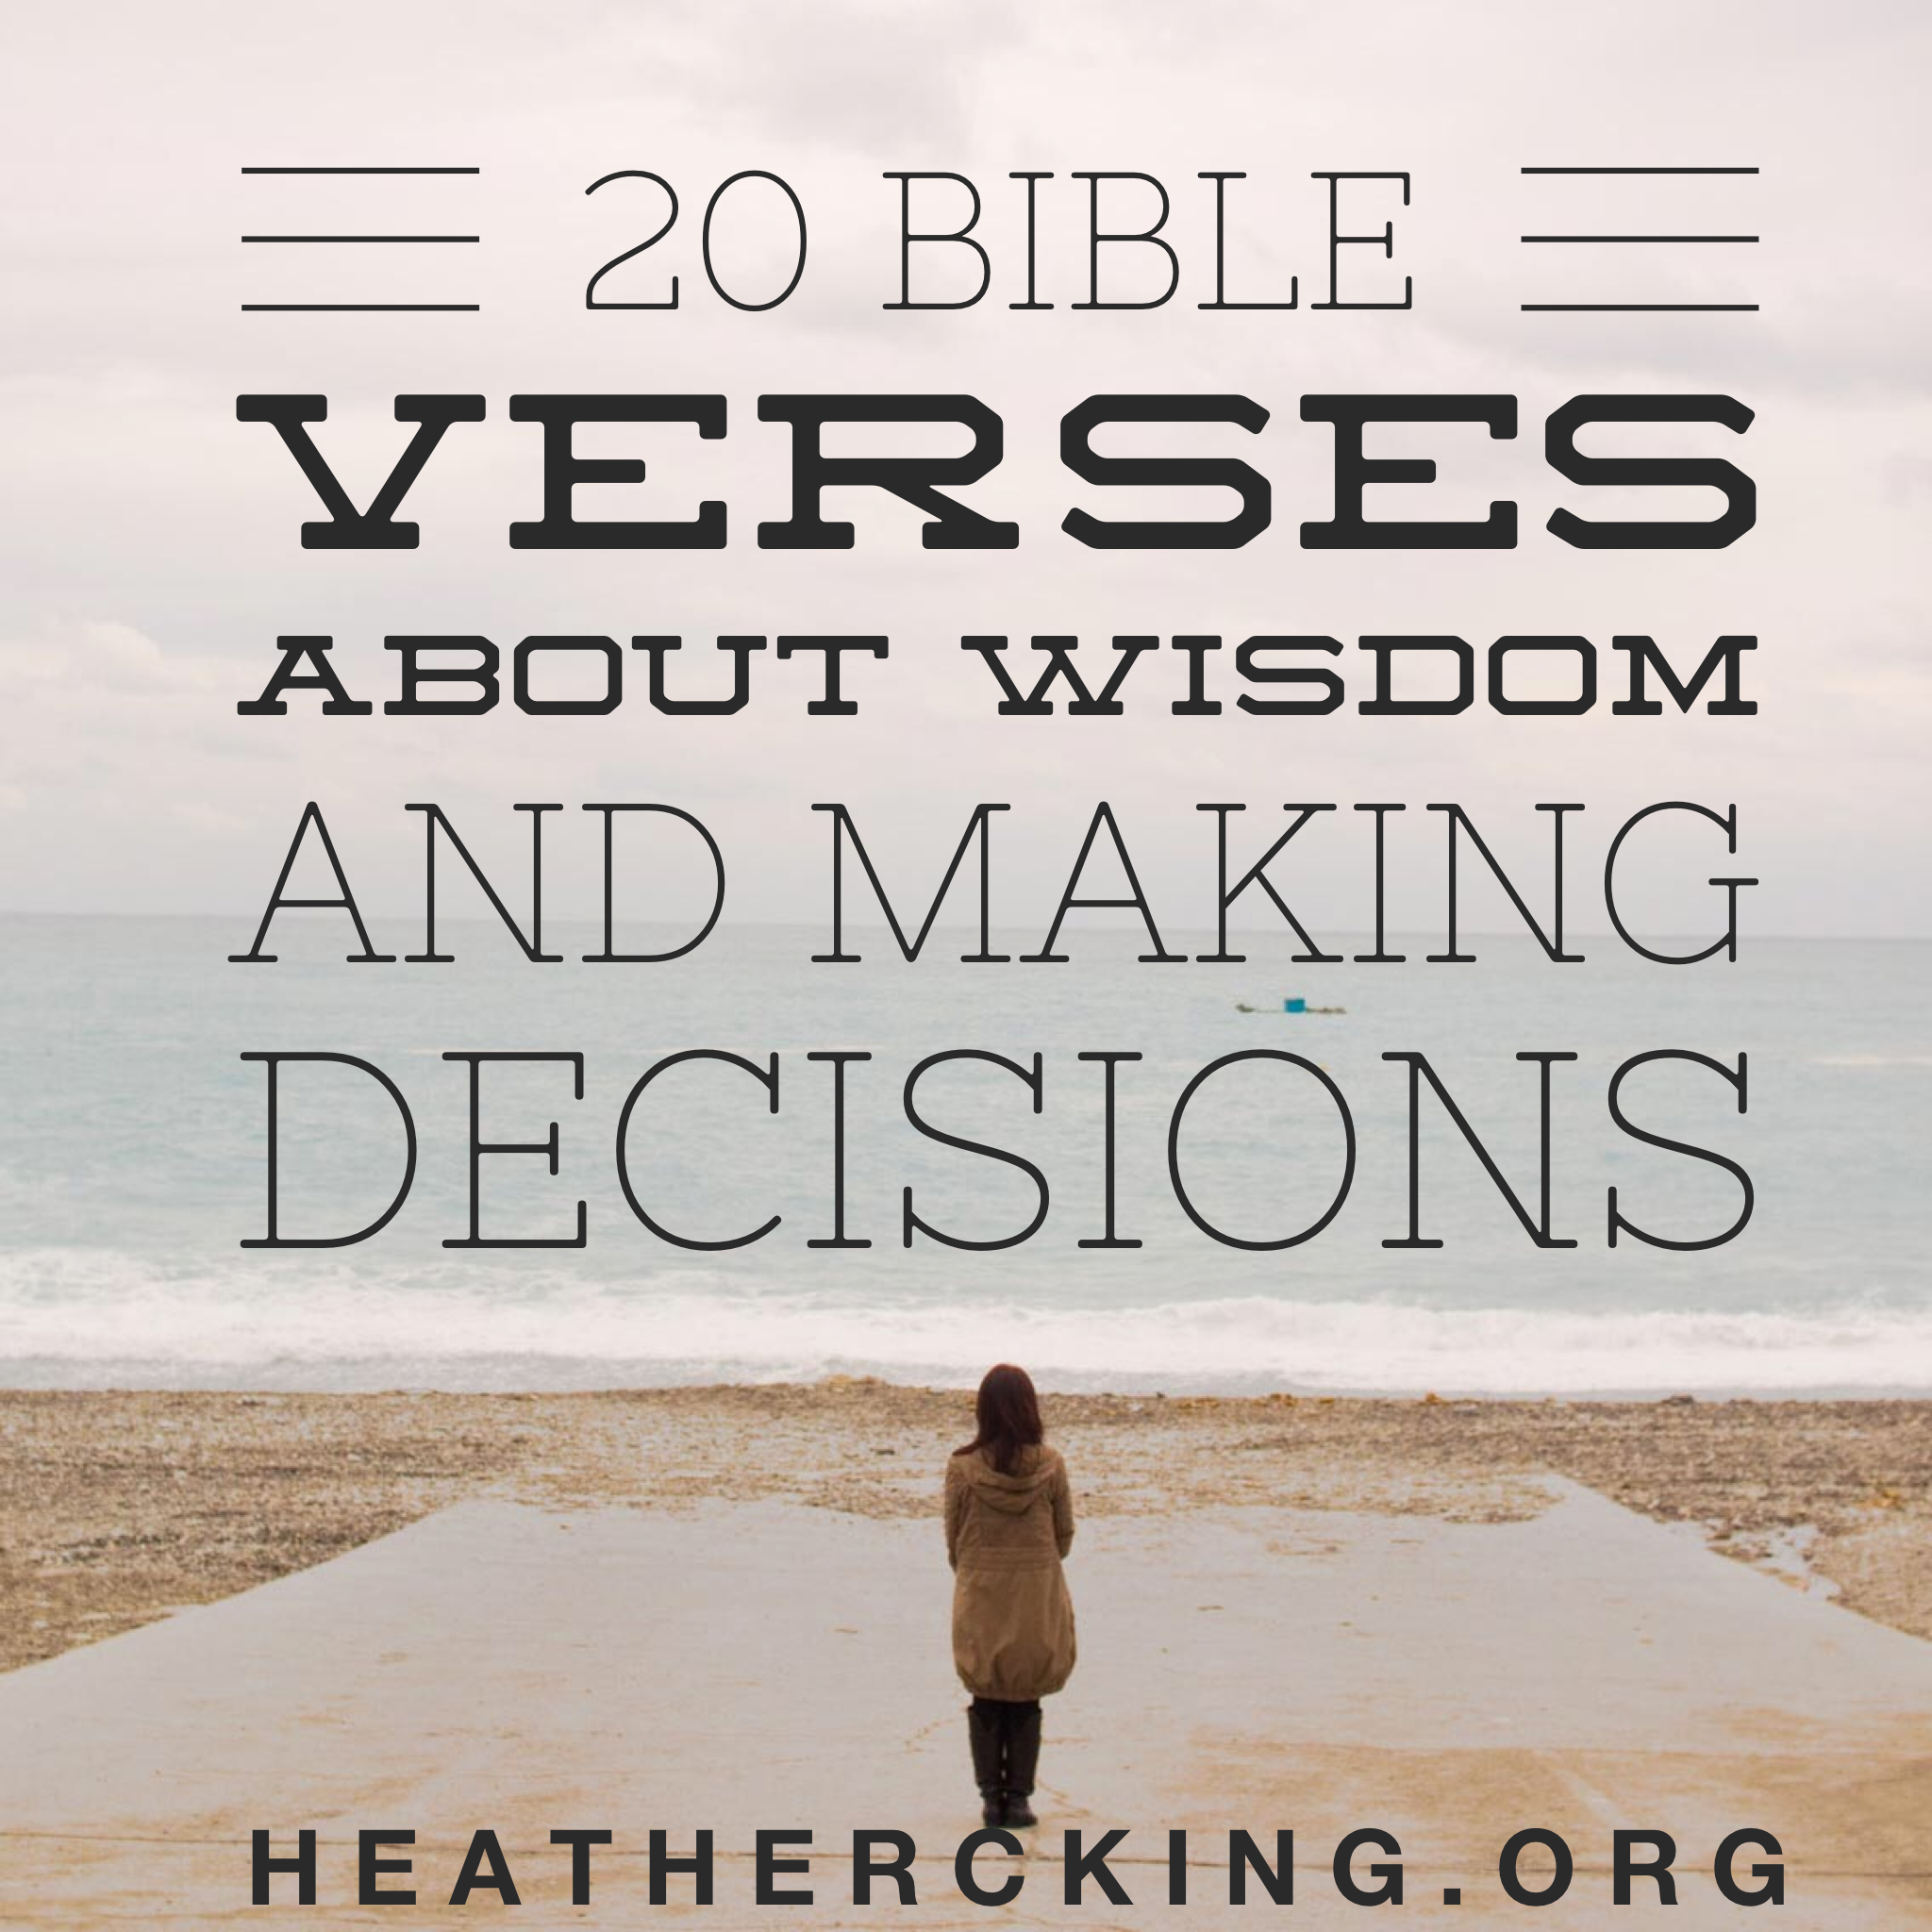 Bible Quotes On Love And Marriage 20 Bible Verses On Wisdom And Making Tough Decisions  Heather C